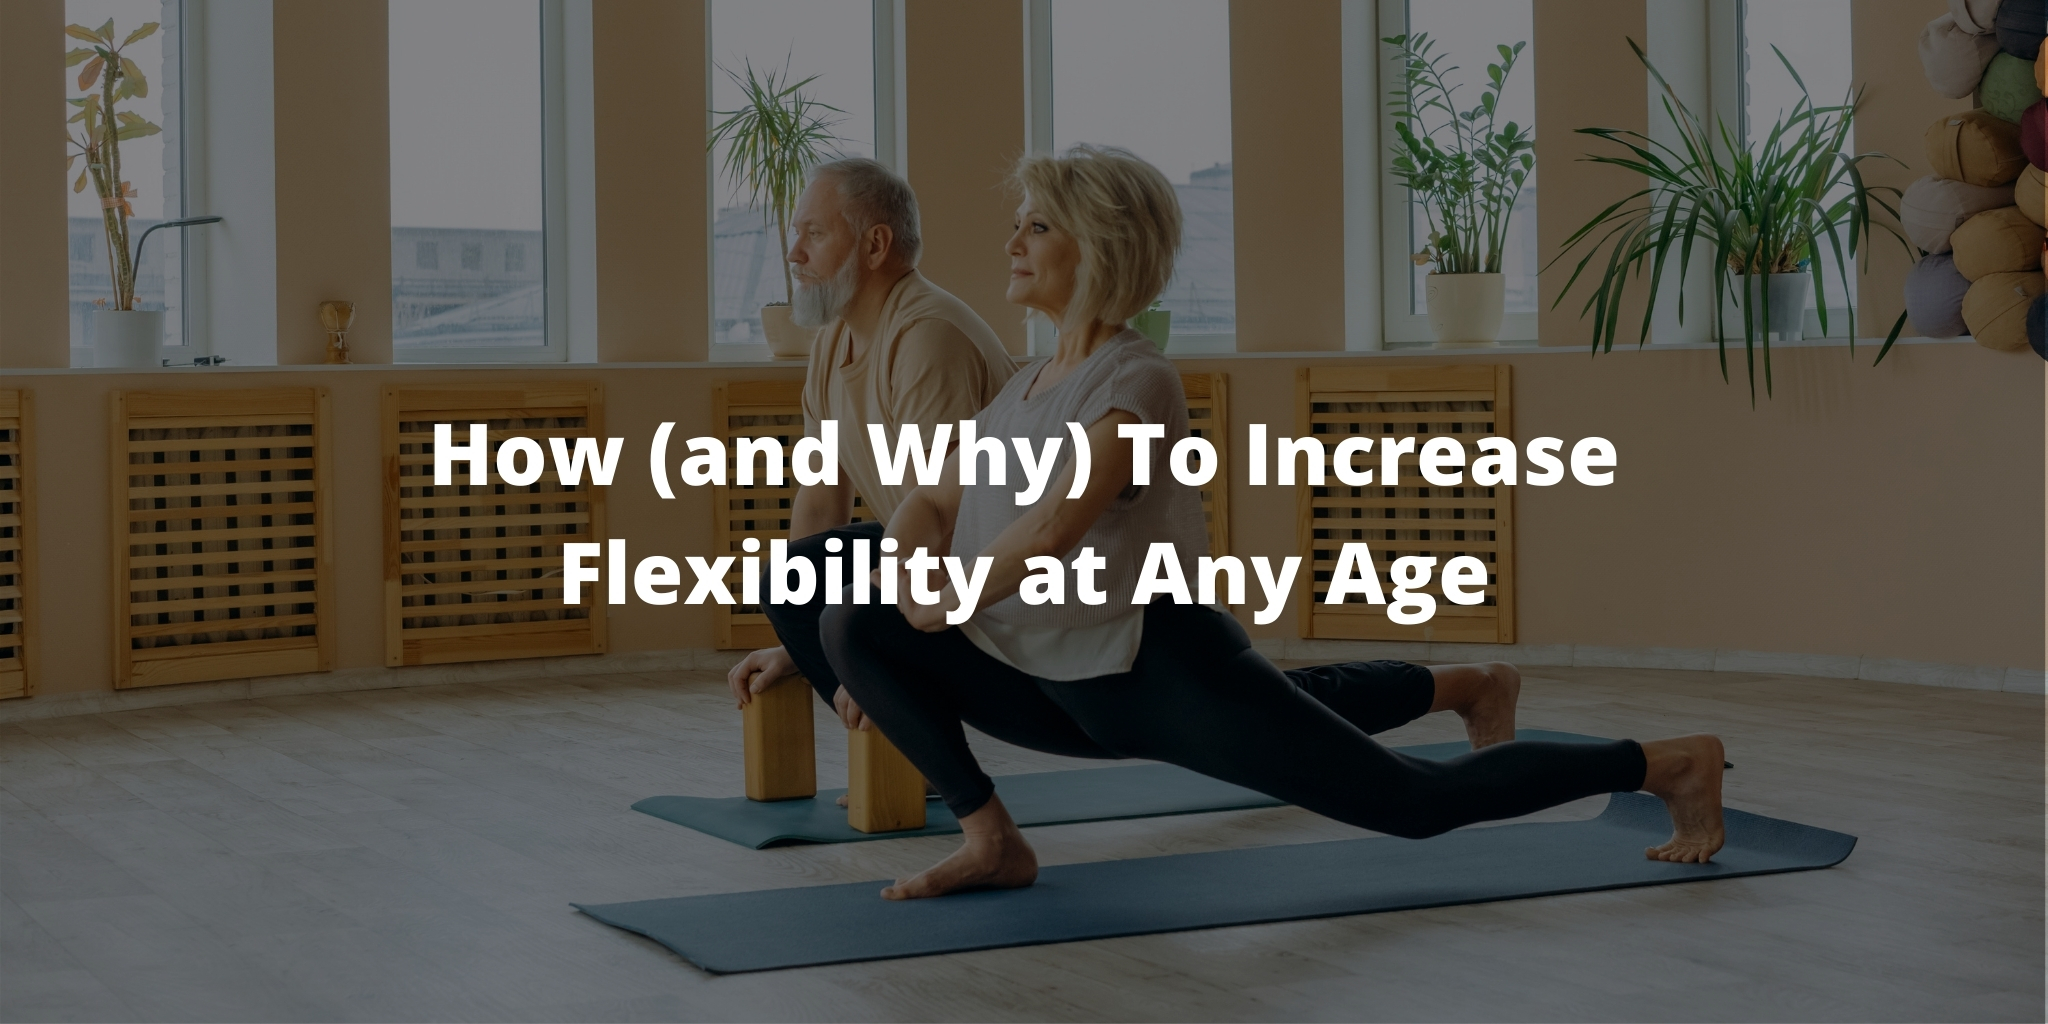 How (and Why) To Increase Flexibility at Any Age